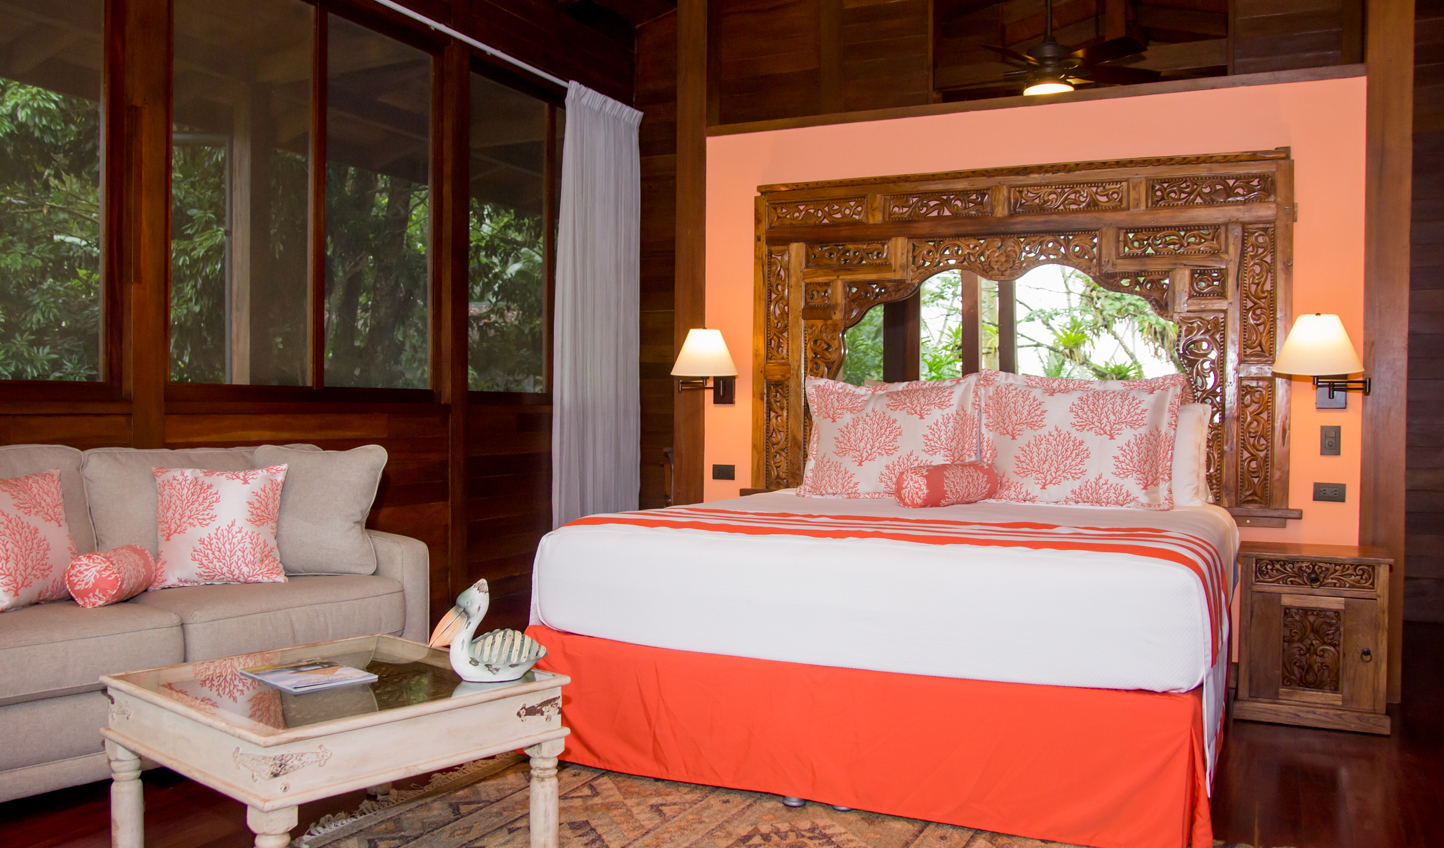 All of the bedrooms at Playa Cativo are bright and airy